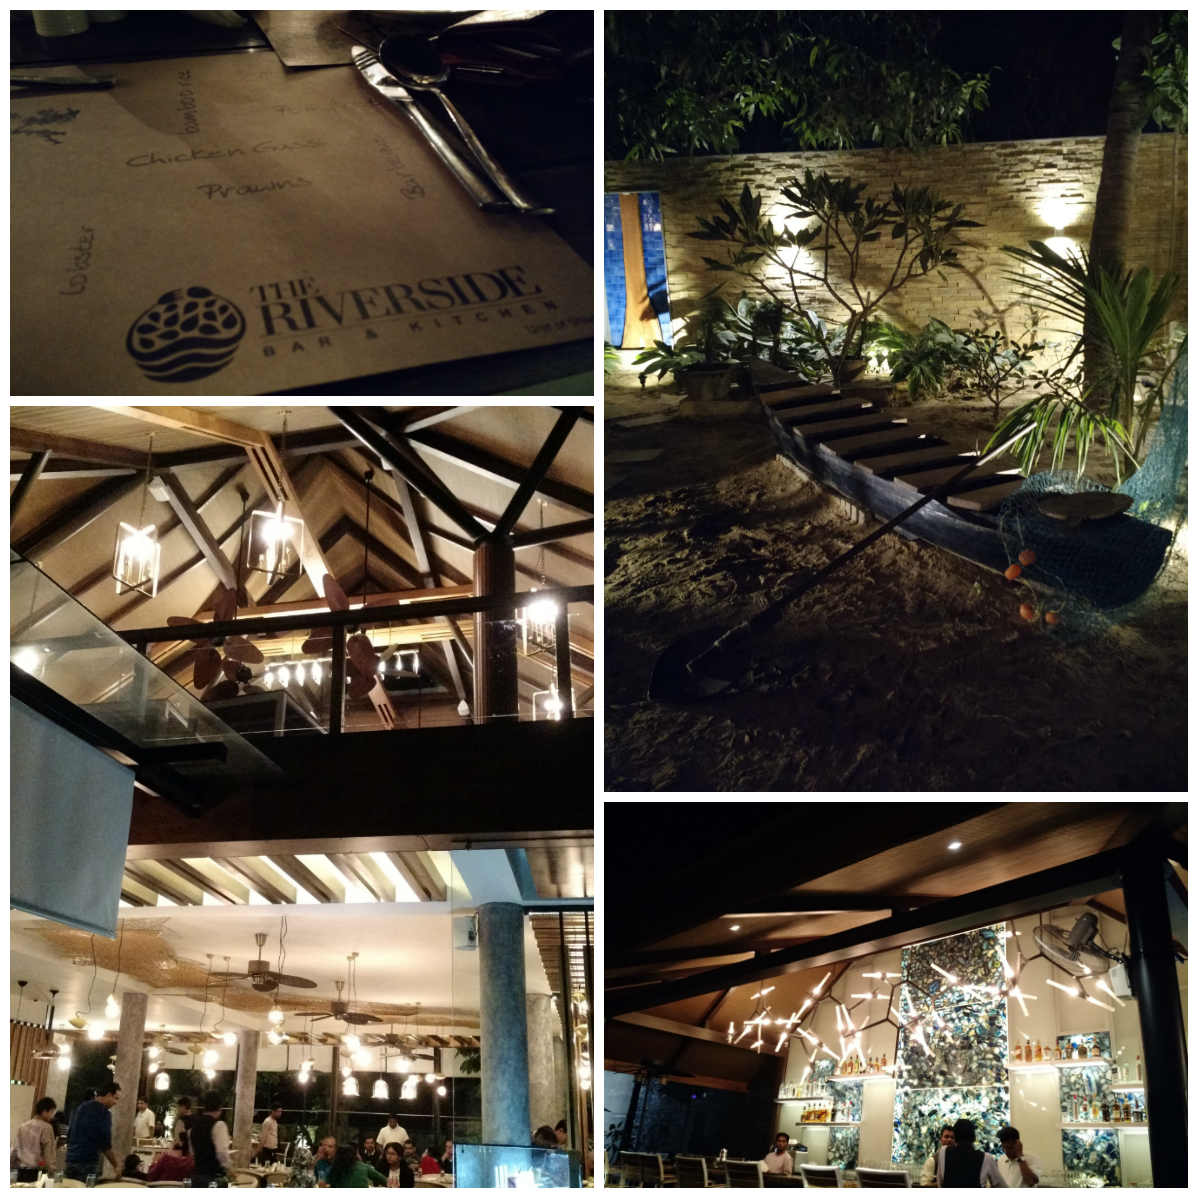 The Riverside Bar Kitchen Bengaluru Karnataka